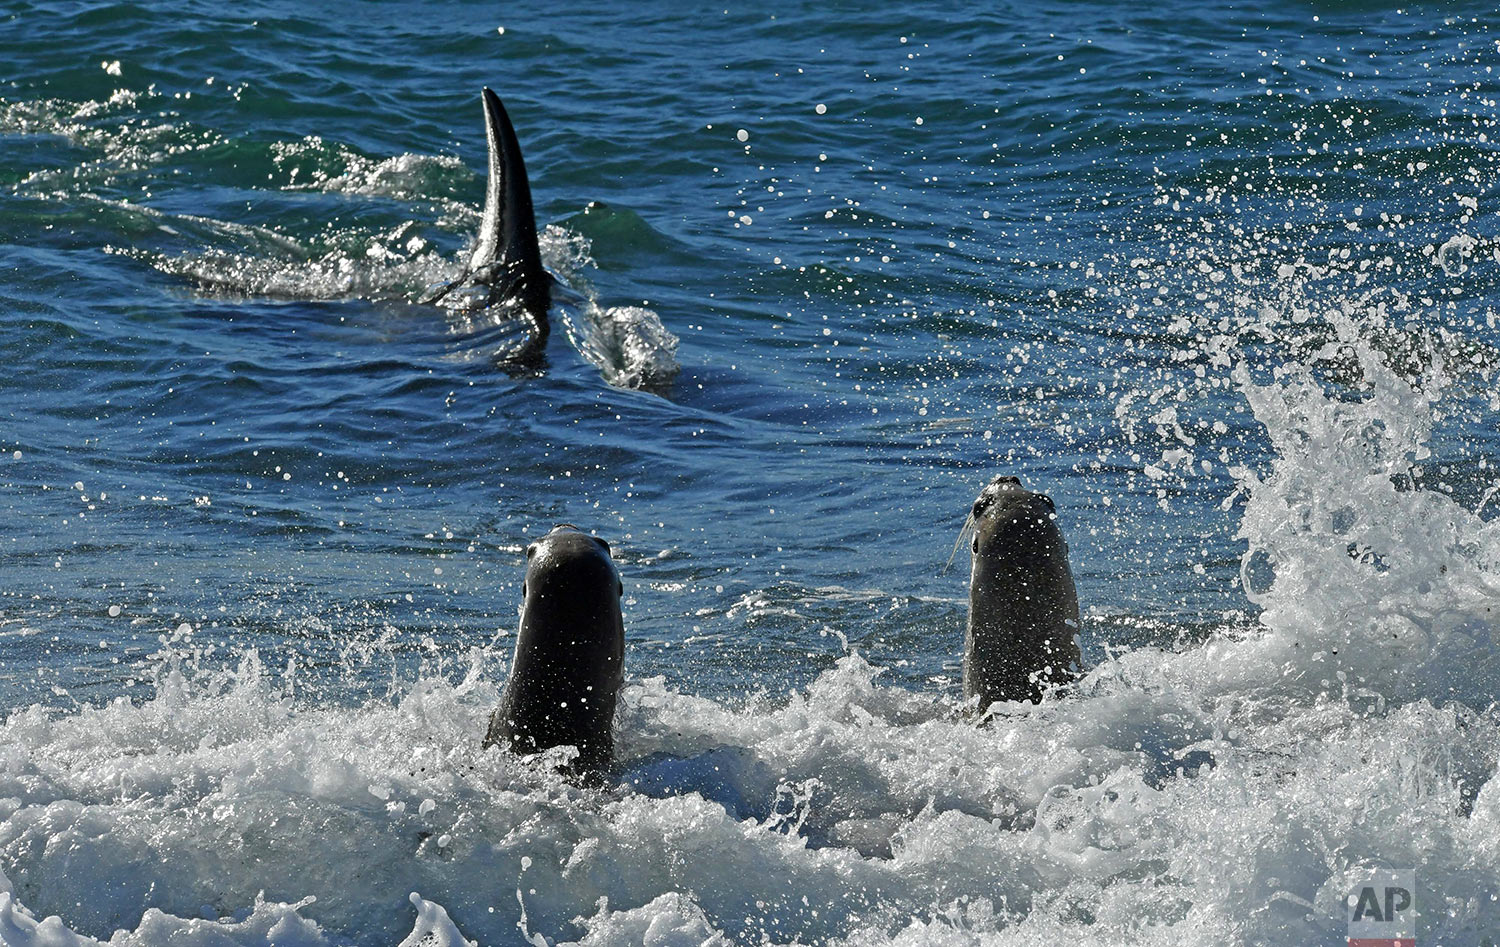 An orca whale hunts sea lion pups on a beach at Punta Norte, Valdes Peninsula, Argentina, Tuesday, April 17, 2018. The orcas' predatory ritual occurs annually in the Southern Atlantic coast in March and April, coinciding with the development of the sea lions when the young cubs are learning to swim. (AP Photo/Daniel Feldman)